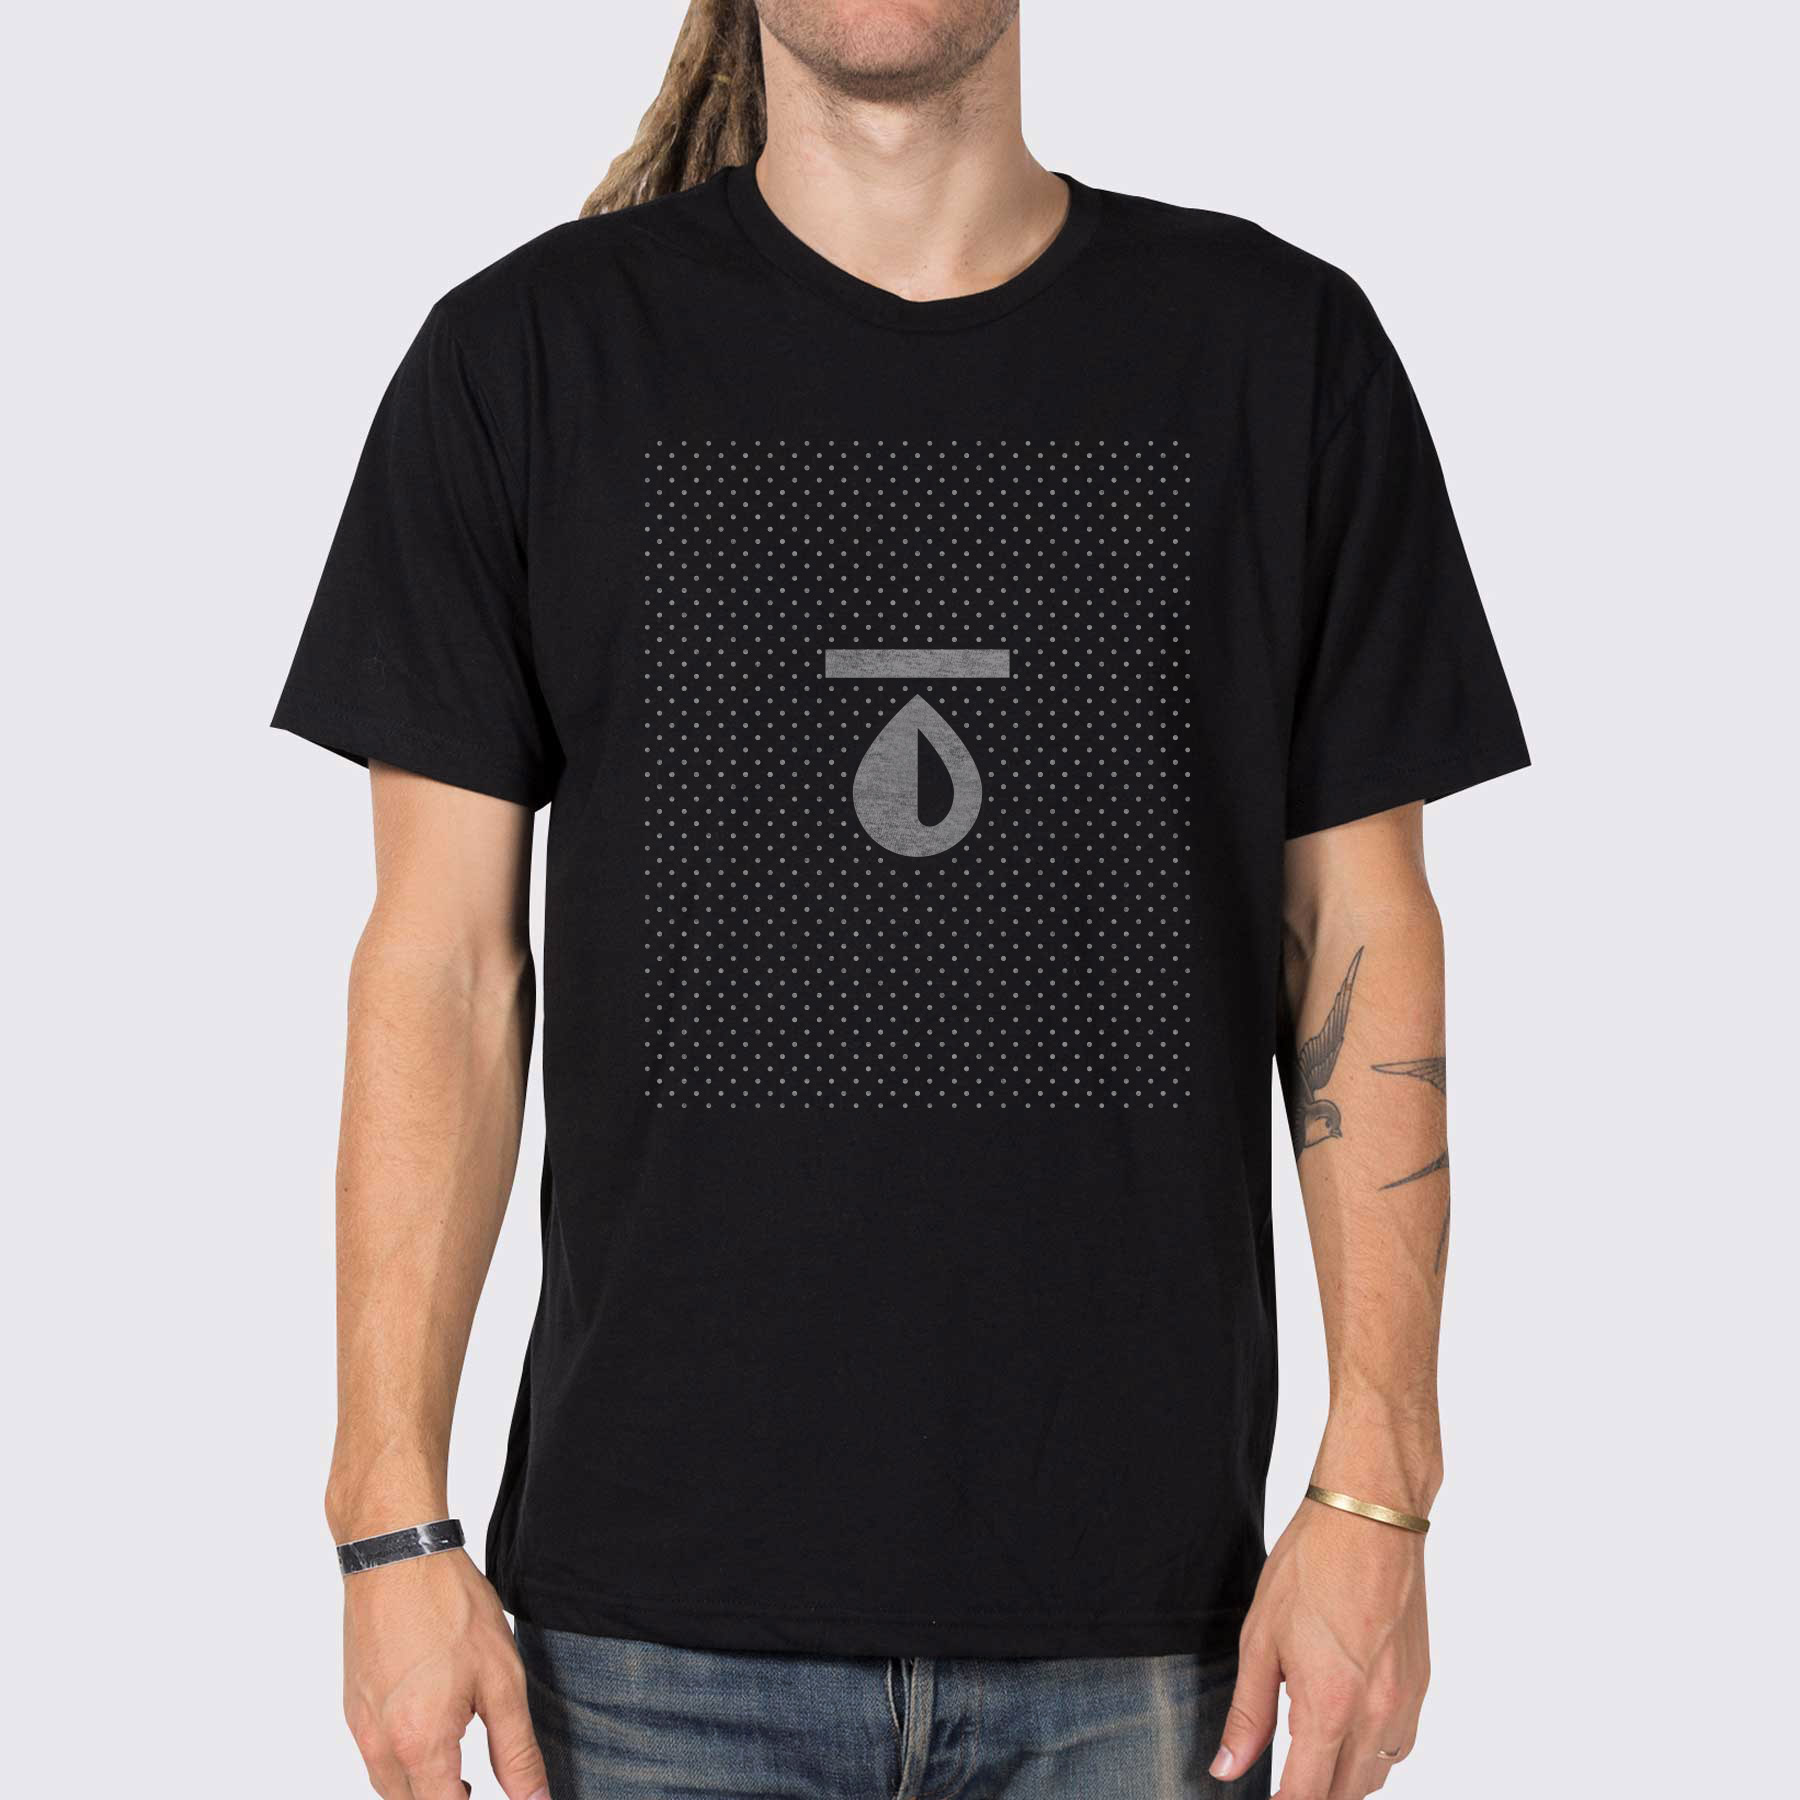 Black t shirt online design - Black T Shirt Online Design 24